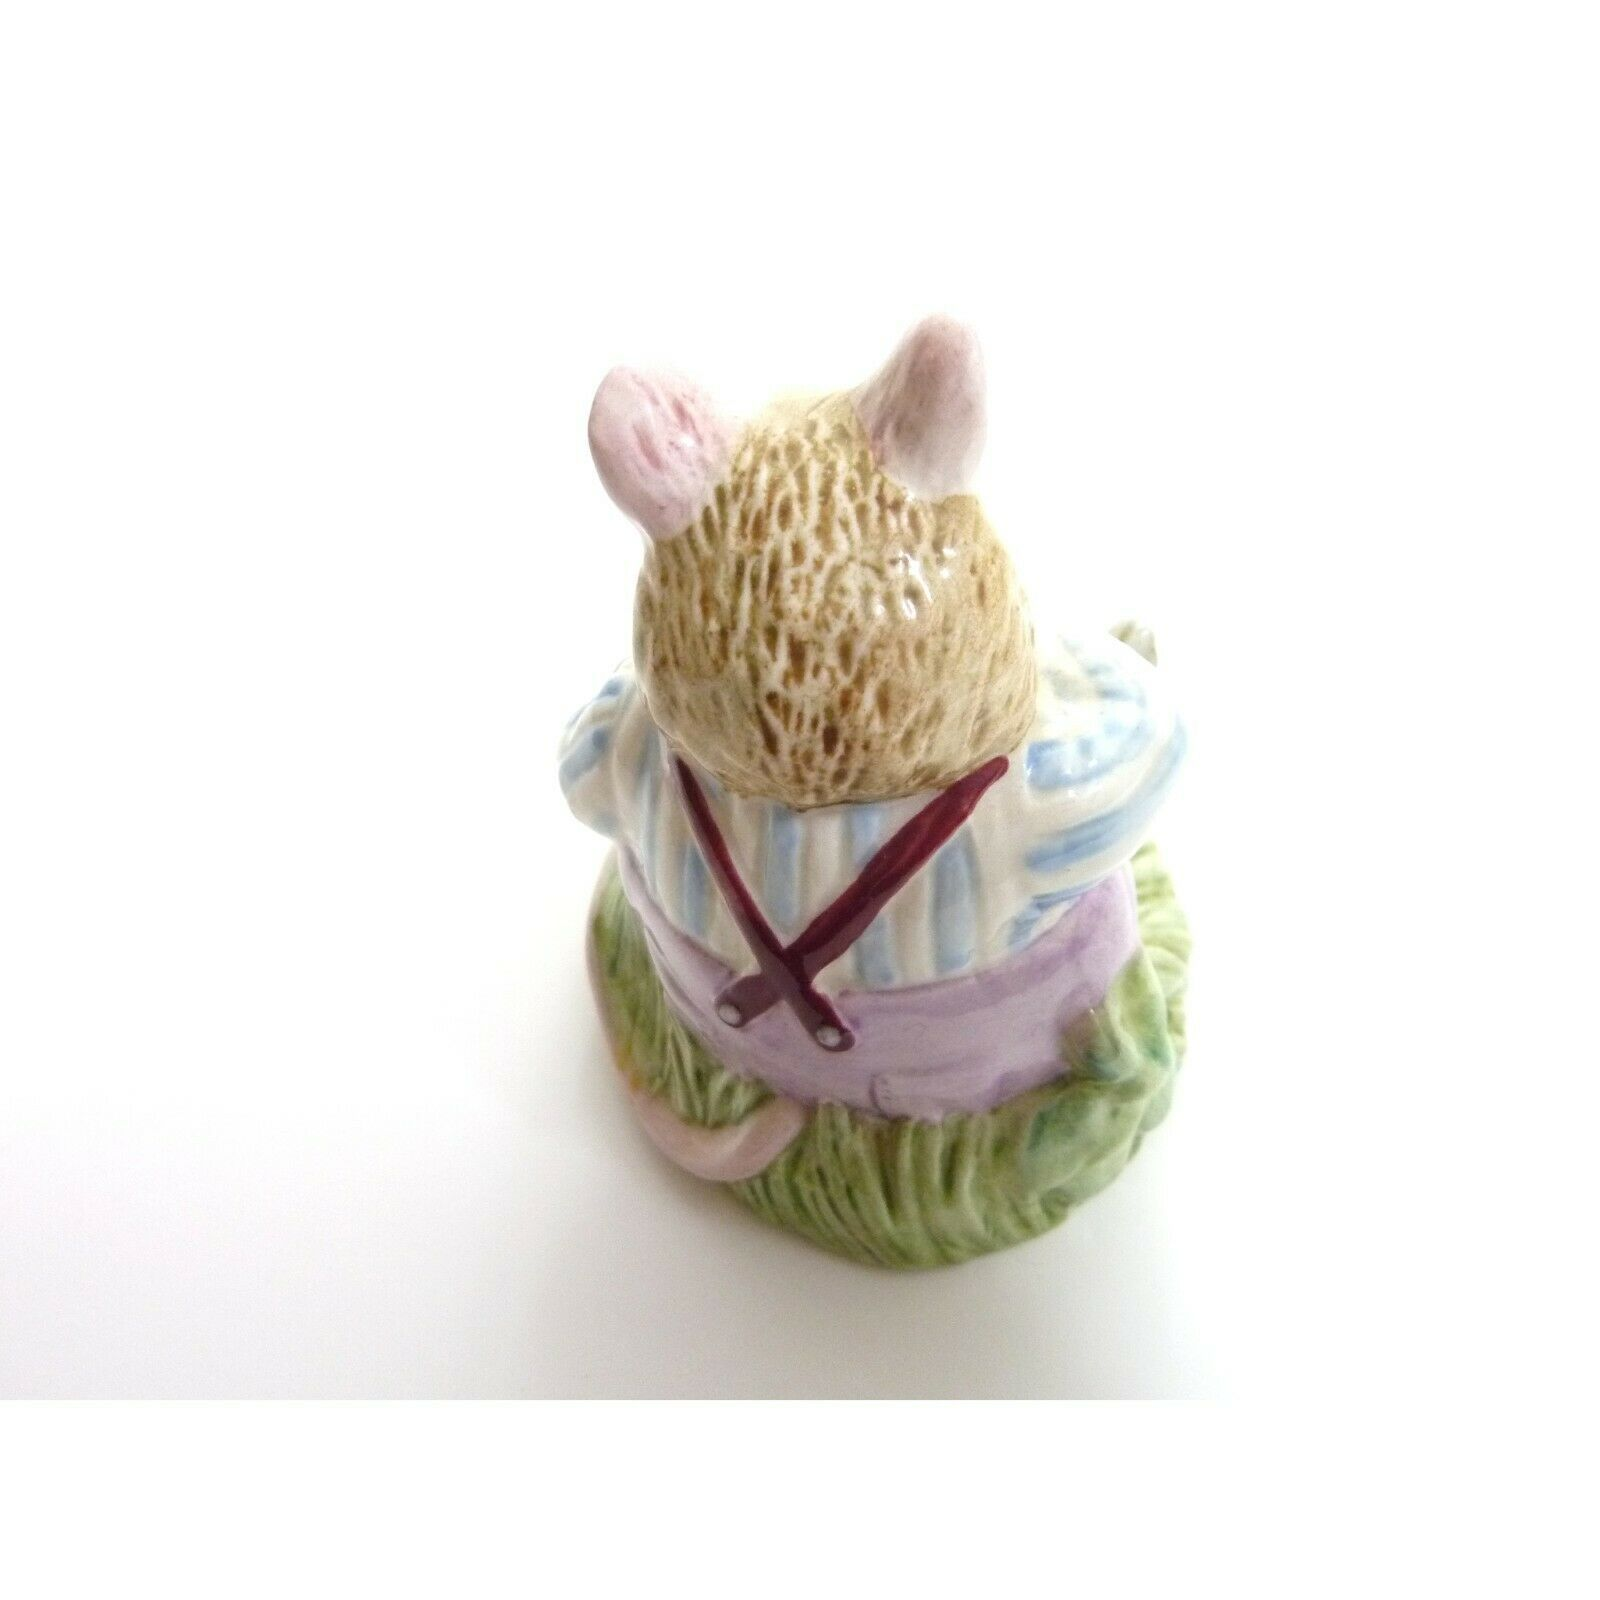 Vintage Mr Toadflax, no cushion, tail on side Royal Doulton figurine image 3